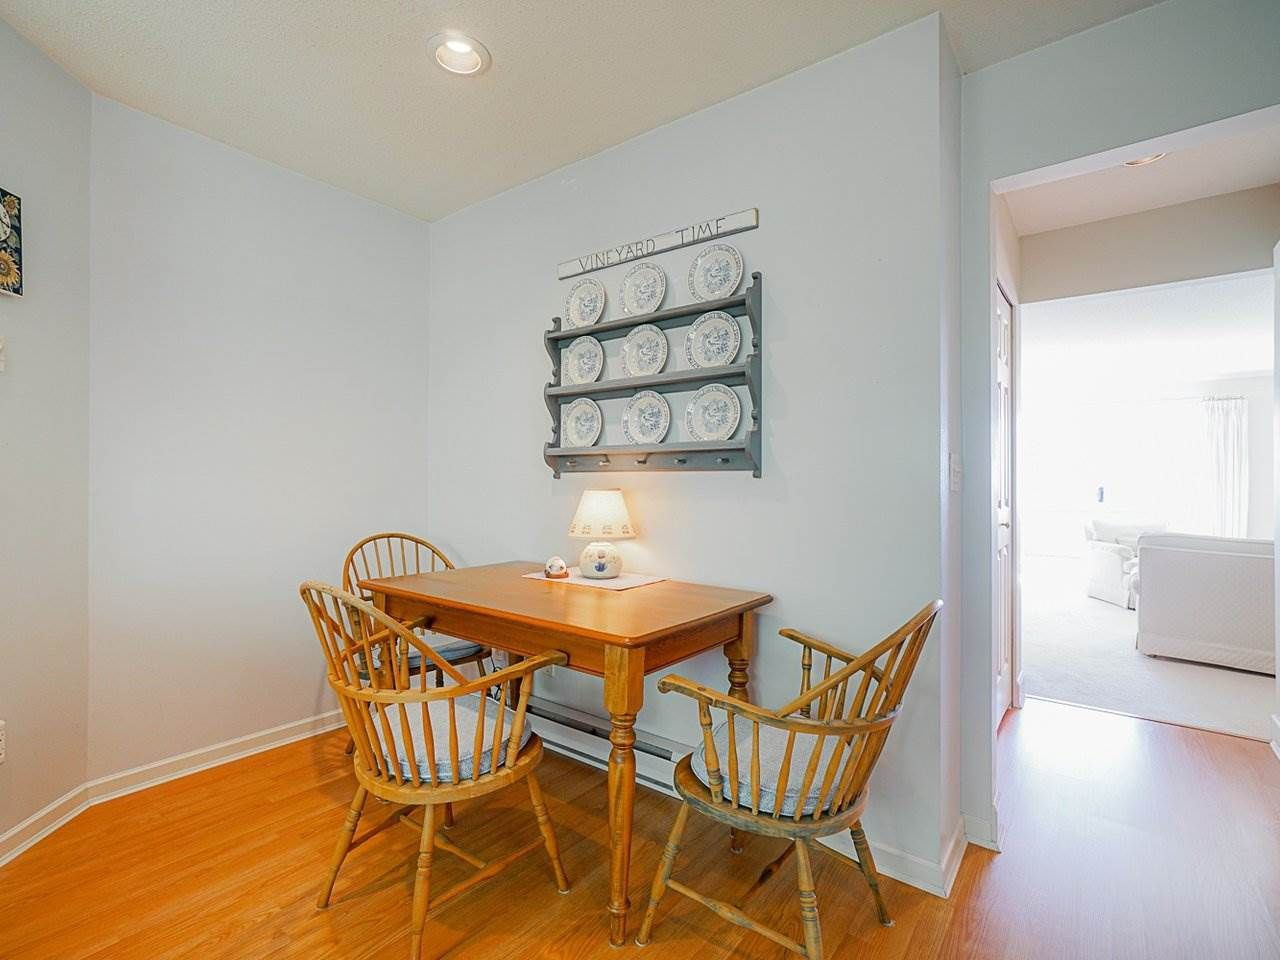 """Photo 30: Photos: 4 235 E KEITH Road in North Vancouver: Lower Lonsdale Townhouse for sale in """"Carriage Hill"""" : MLS®# R2471169"""